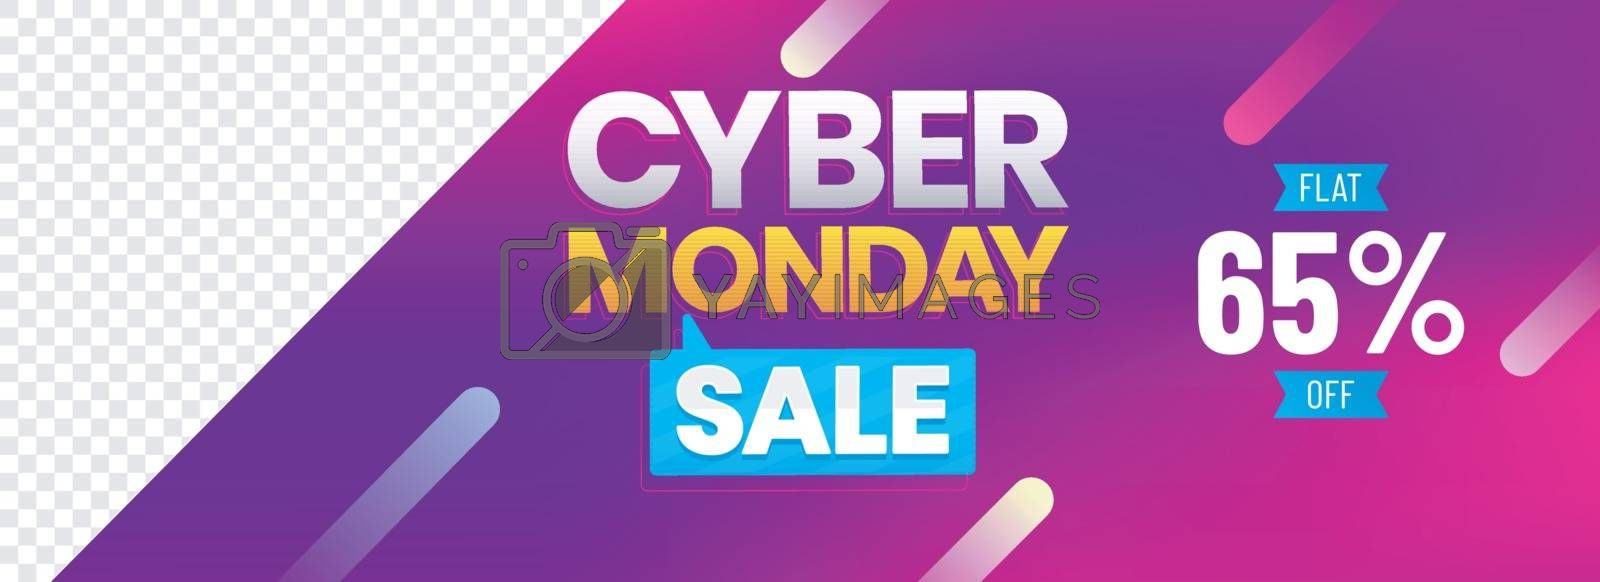 Cyber Monday Sale header or banner design with 65% discount offe by aispl